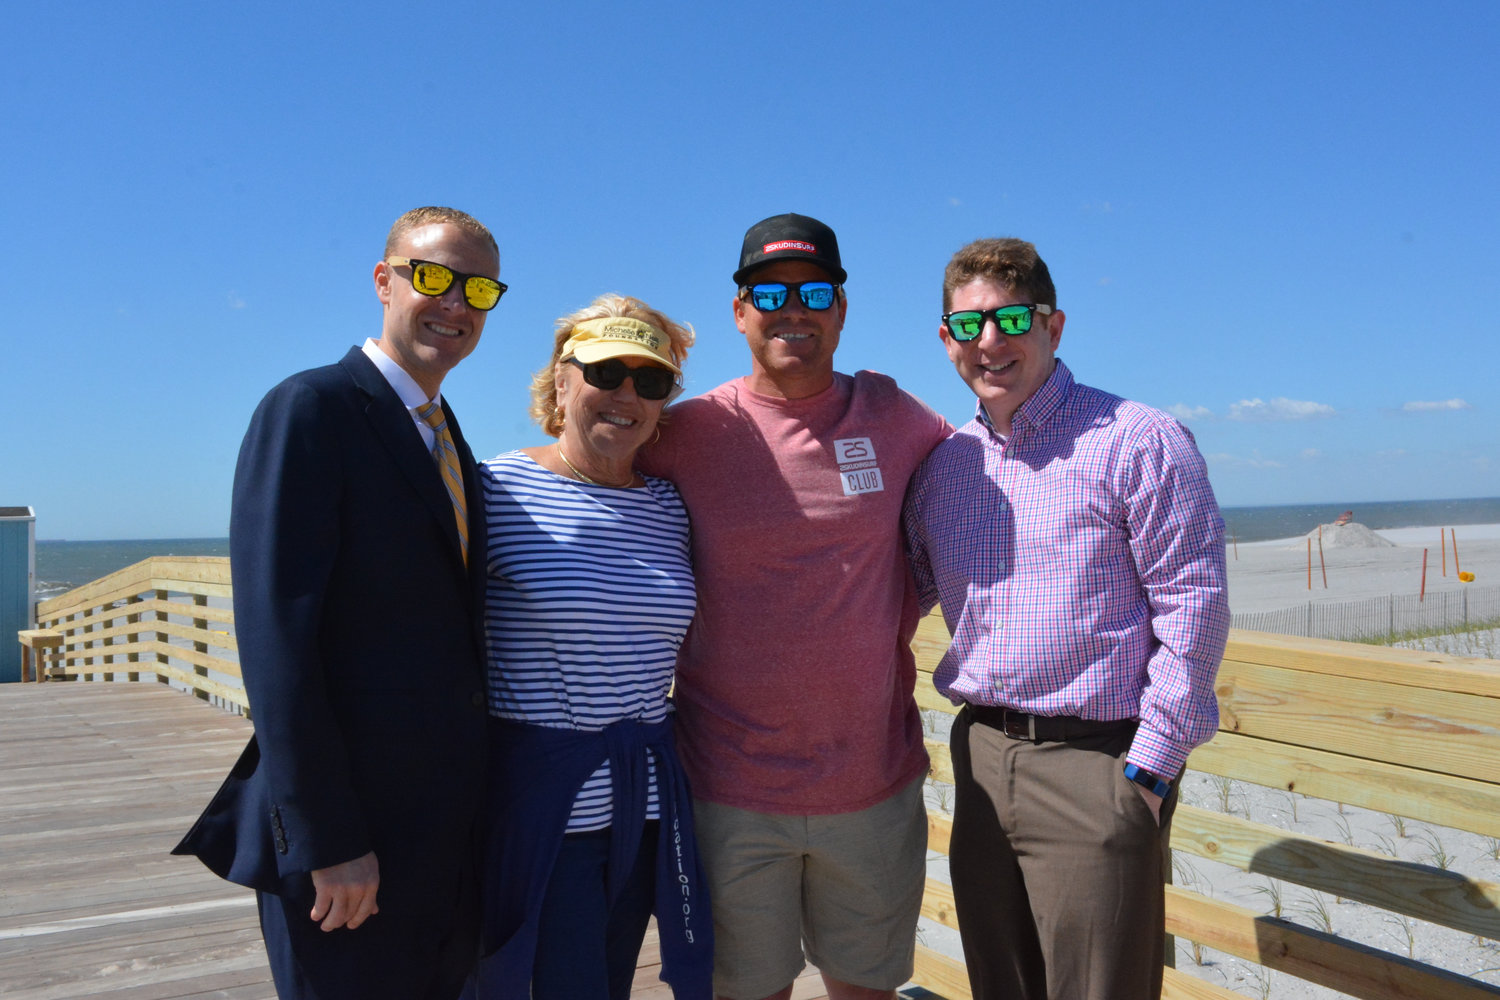 Acting City Manager Rob Asgostisi, left; Carol O'Neill, organizer of the annual Michelle O'Neill Volleyball Tournament; Skudin Surf's Cliff Skudin; and city spokesman Gordon Tepper at Friday's ceremony.